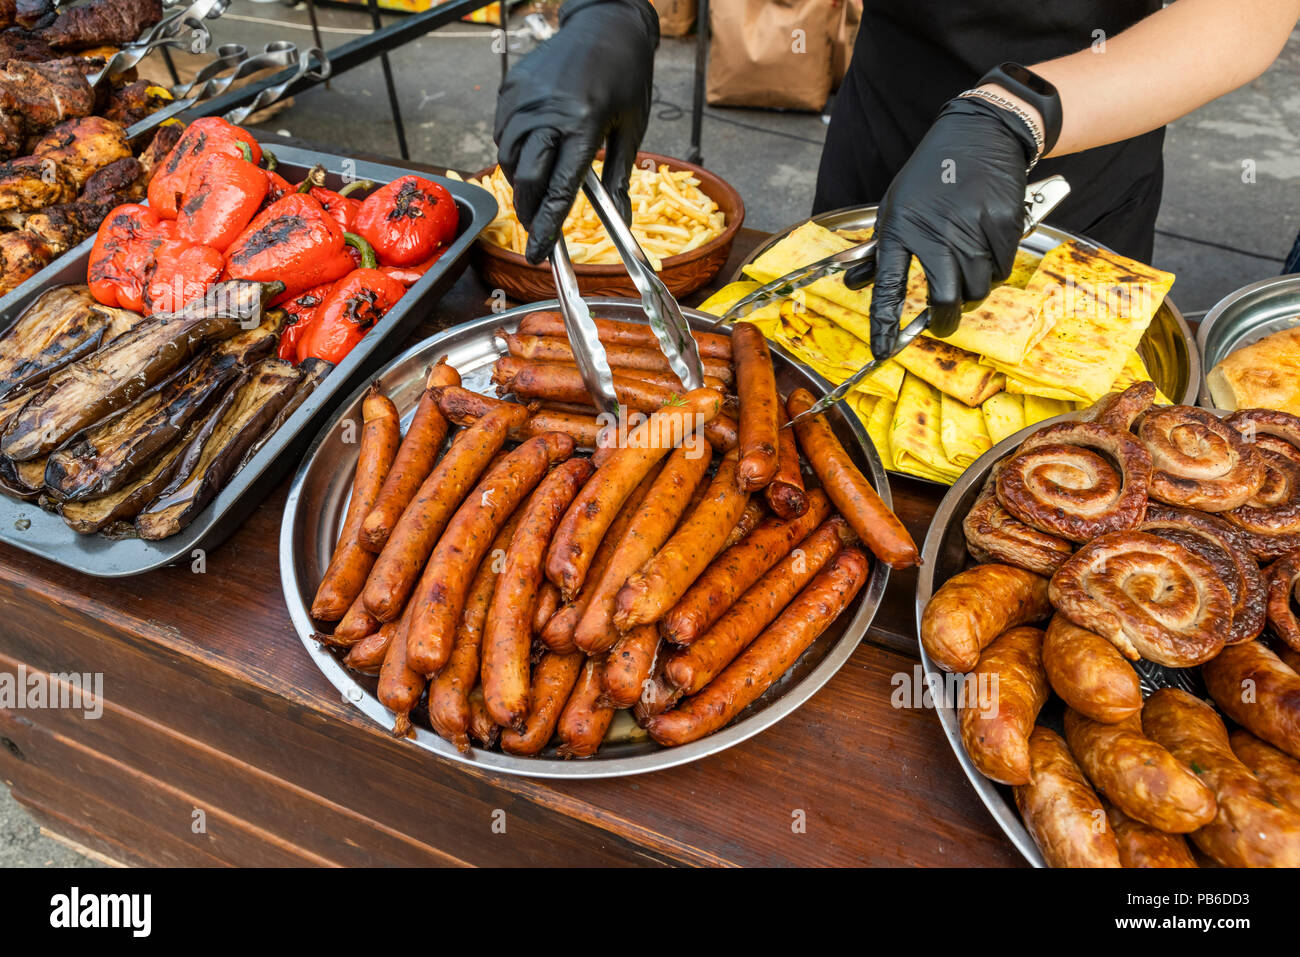 grilled sausages that are laid out on a large metal plate on a table - Stock Image